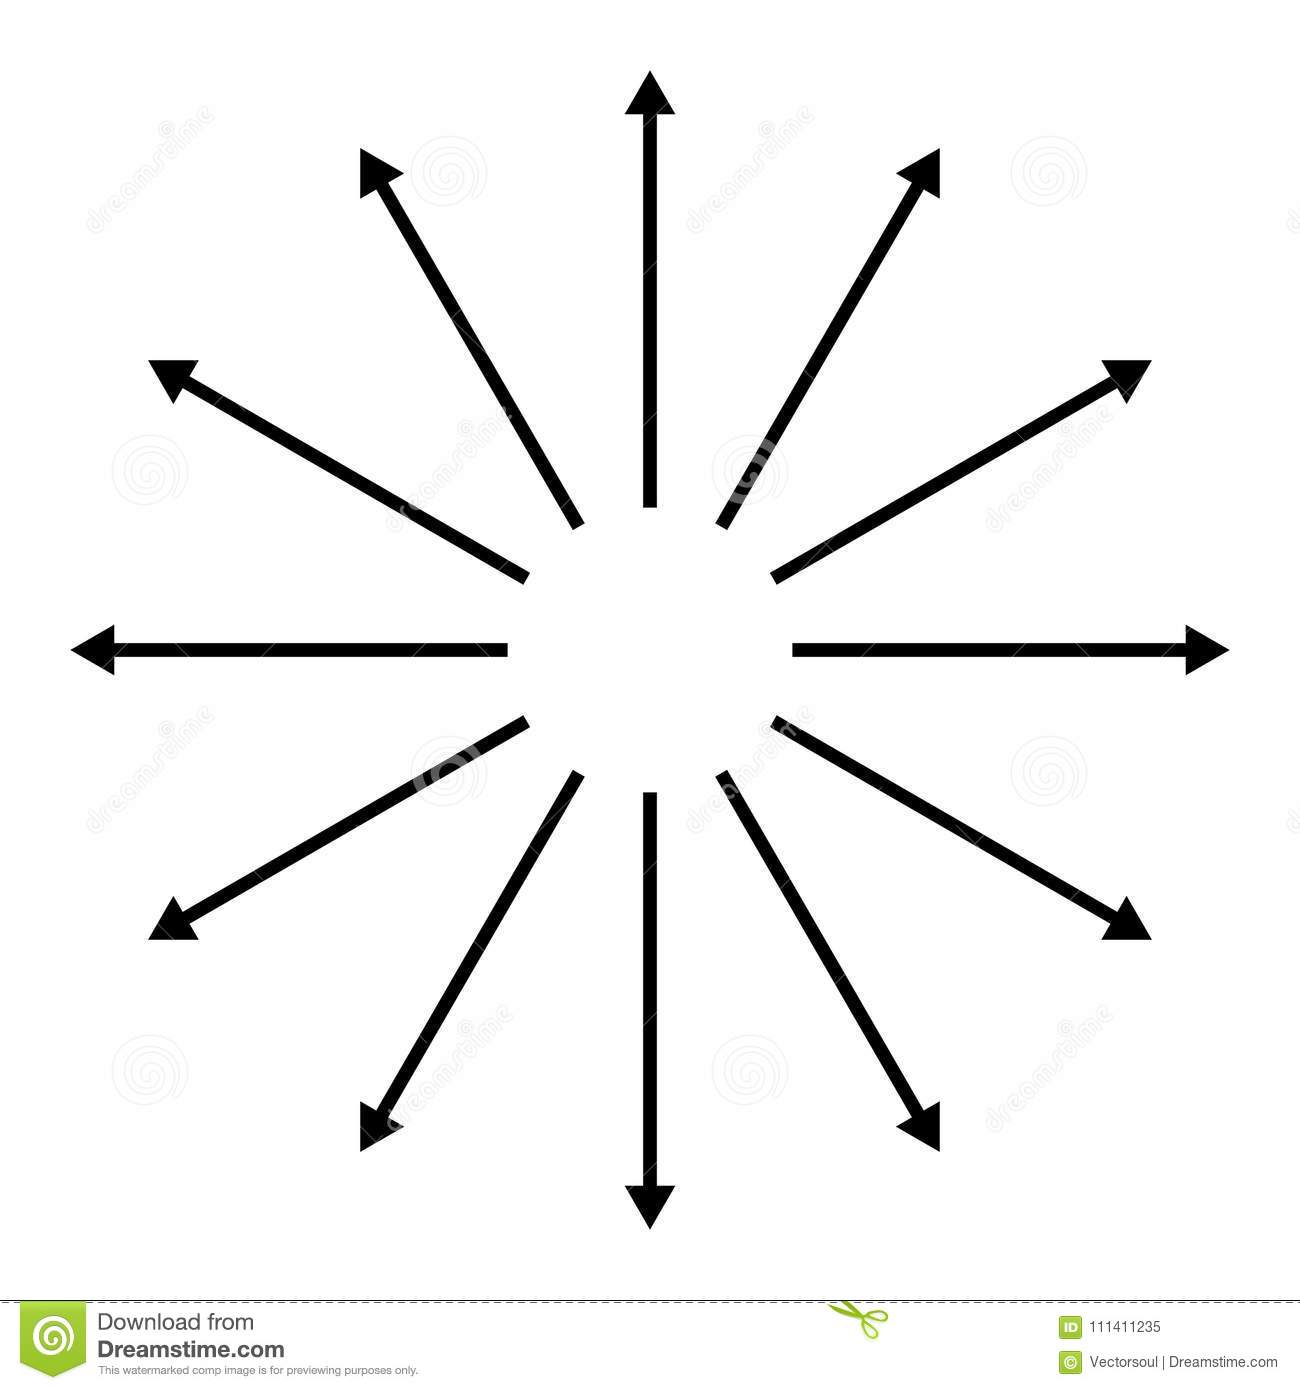 Concentric, radial, radiating arrows. Circular arrow element